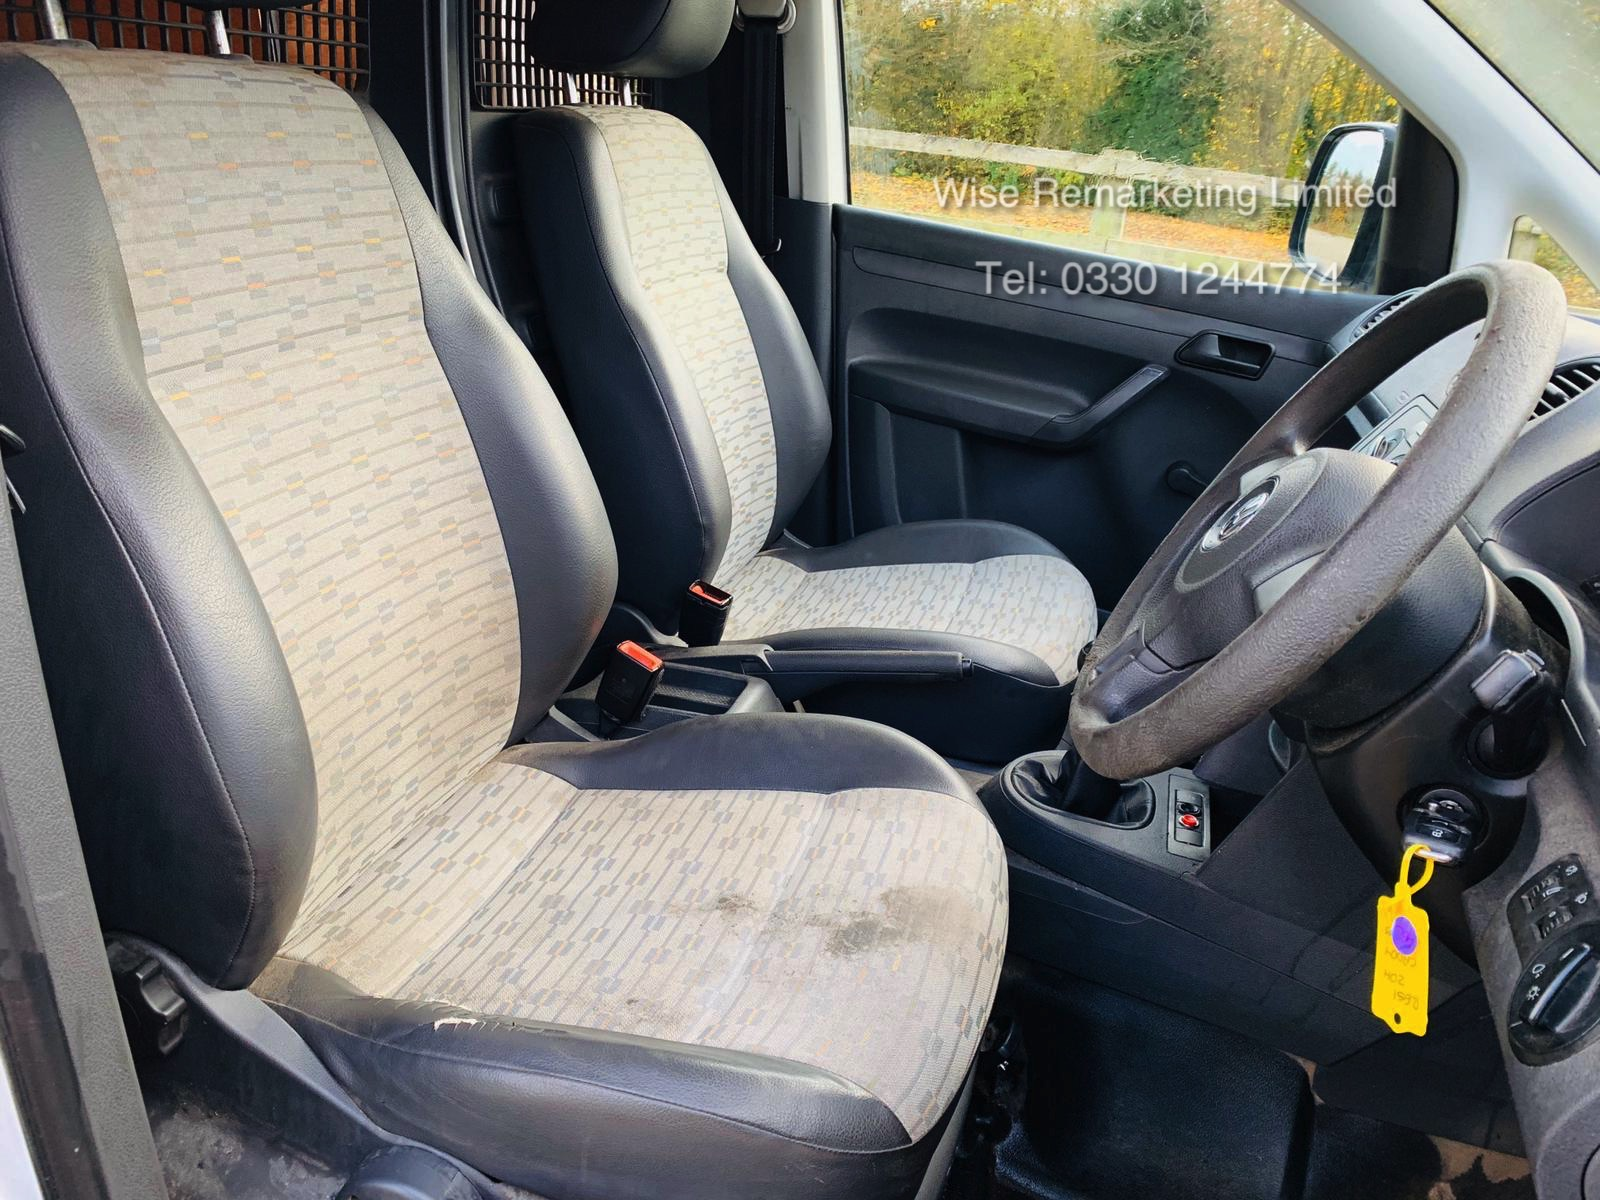 Volkswagen Caddy C20 1.6 TDI - 2012 Model - 1 Keeper From New - Side Loading Door - Ply Lined - Image 11 of 16